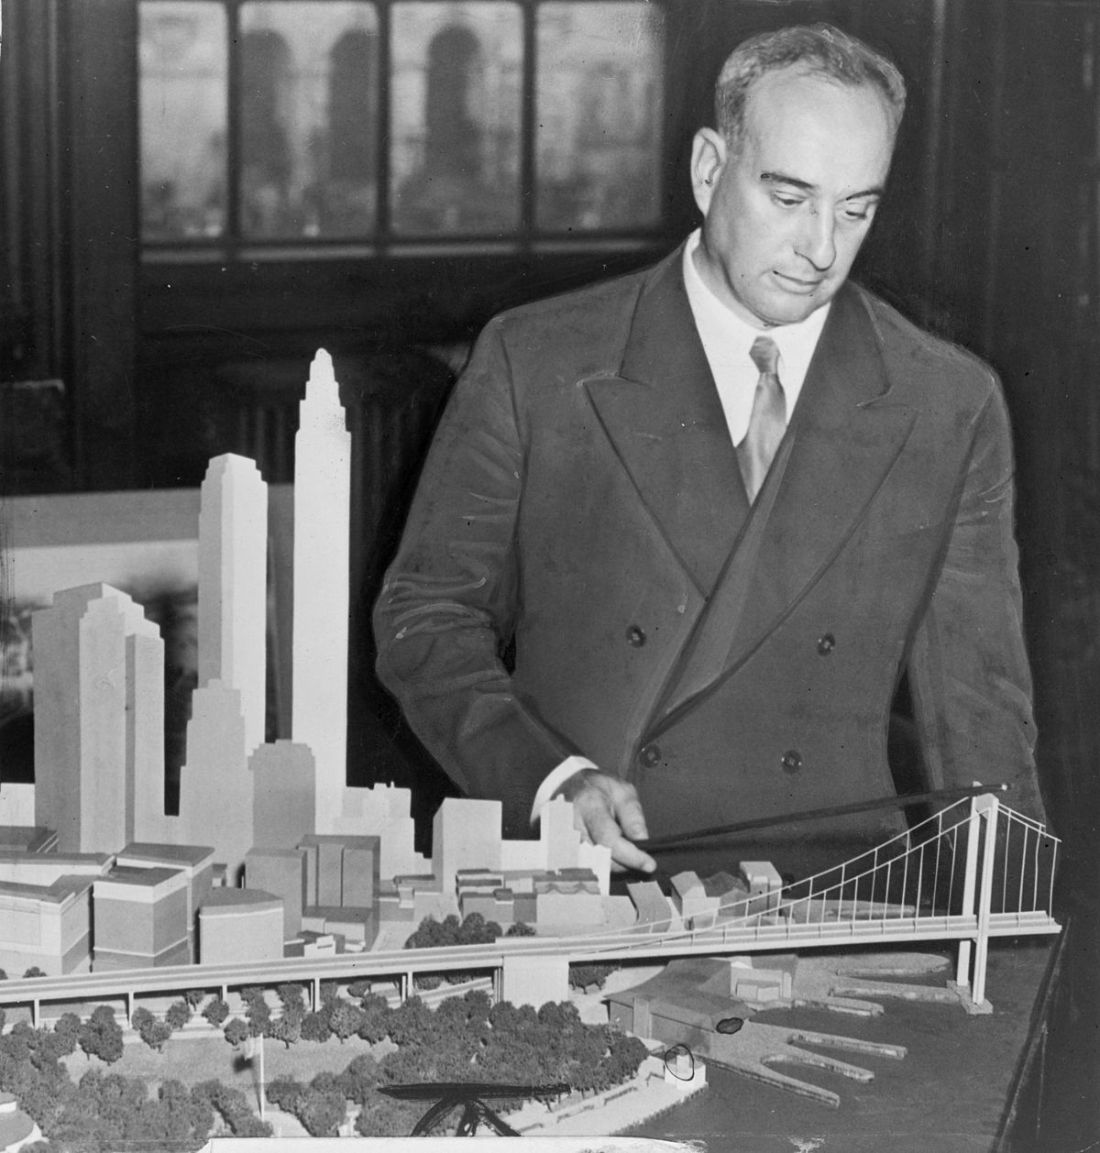 1200px-Robert_Moses_with_Battery_Bridge_model